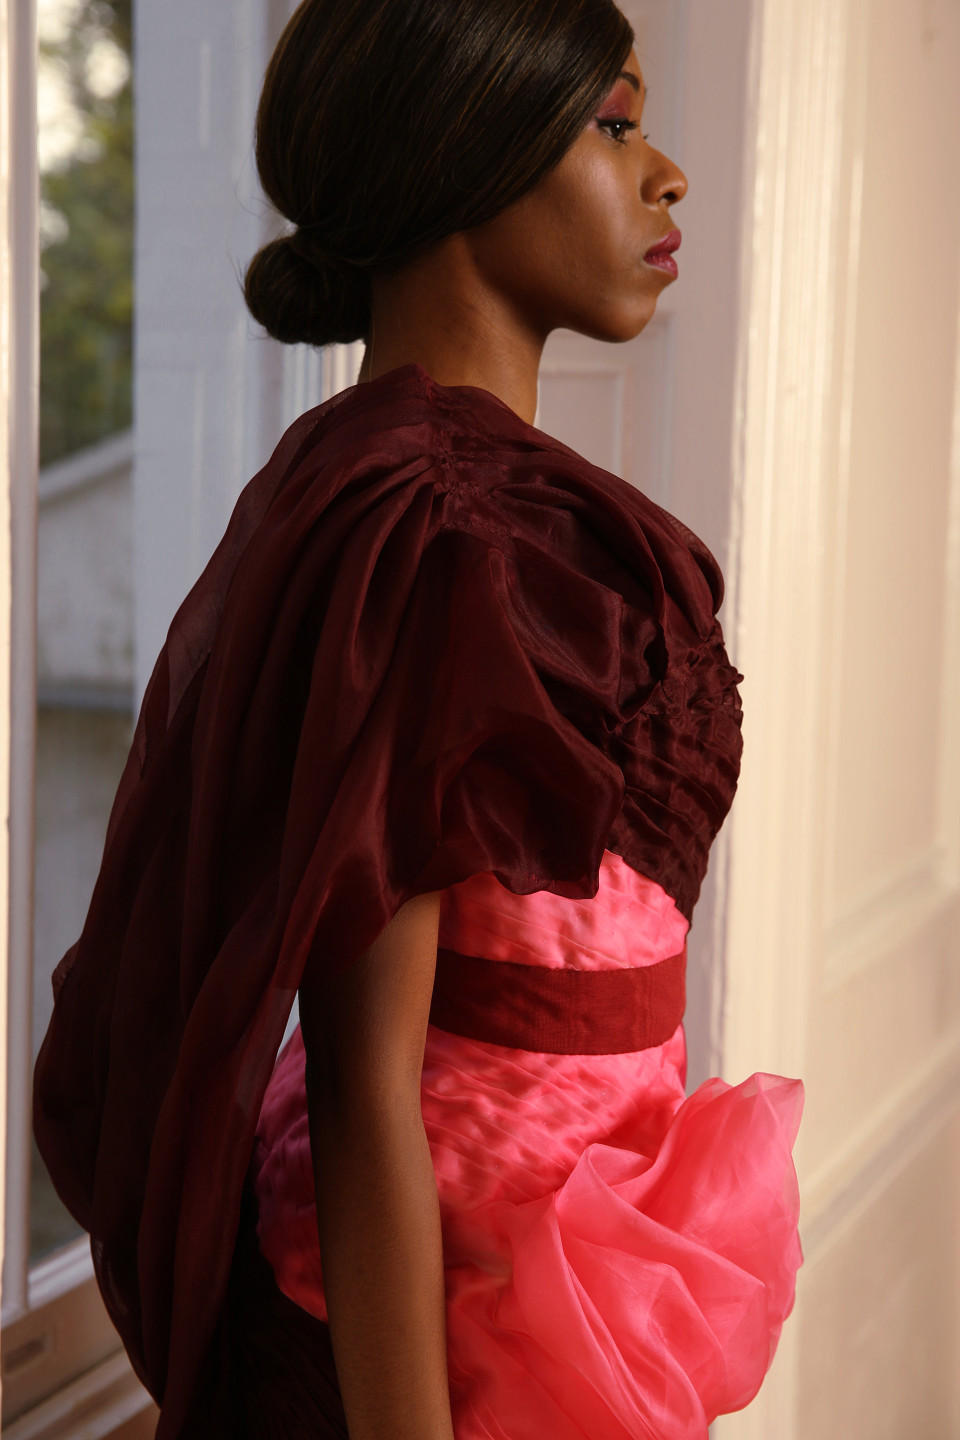 draped couture dress, draped red couture dress london, red dress, dress with flowers/ floral dress, organza dress, silk organza dress/tulle dress, evening wear custom made dress gown, luxury fashion, sculpted dress, pleated dress, hand made dress, black designer London designer